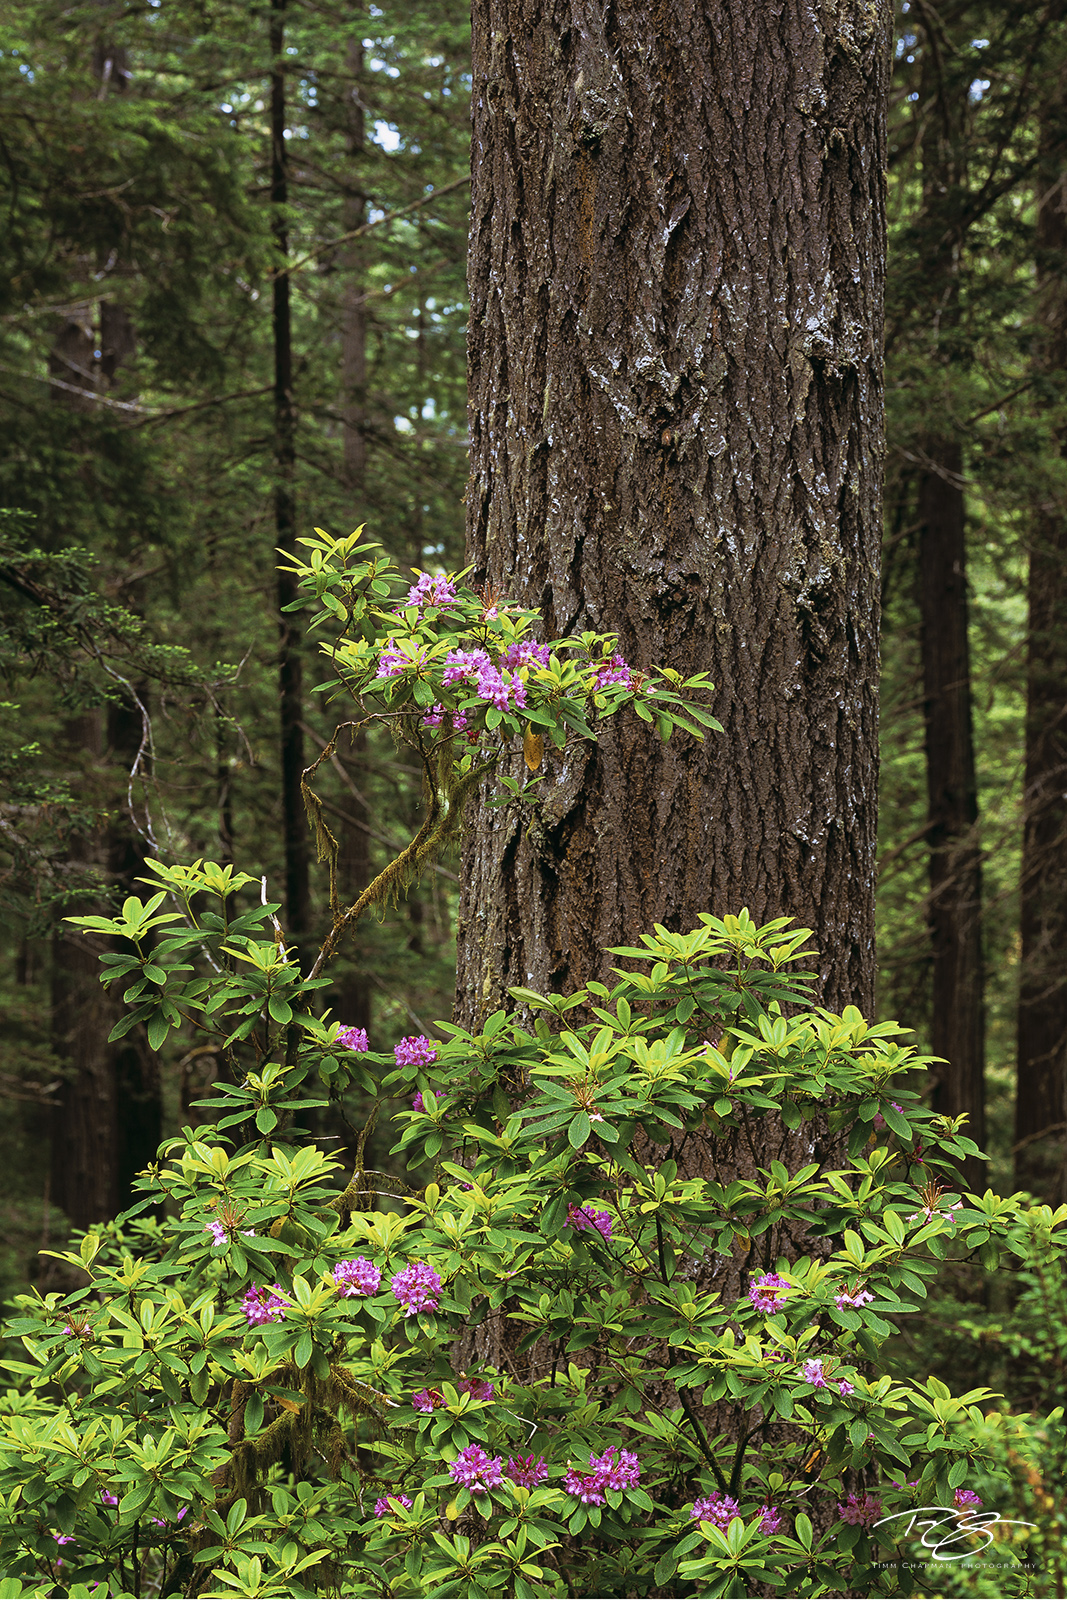 redwoods national park, redwoods state park, jedediah smith redwoods state park, del norte coast redwoods state park, prairie creek redwoods state park, rhododendron, blooming, in bloom, dawn redwood,, photo